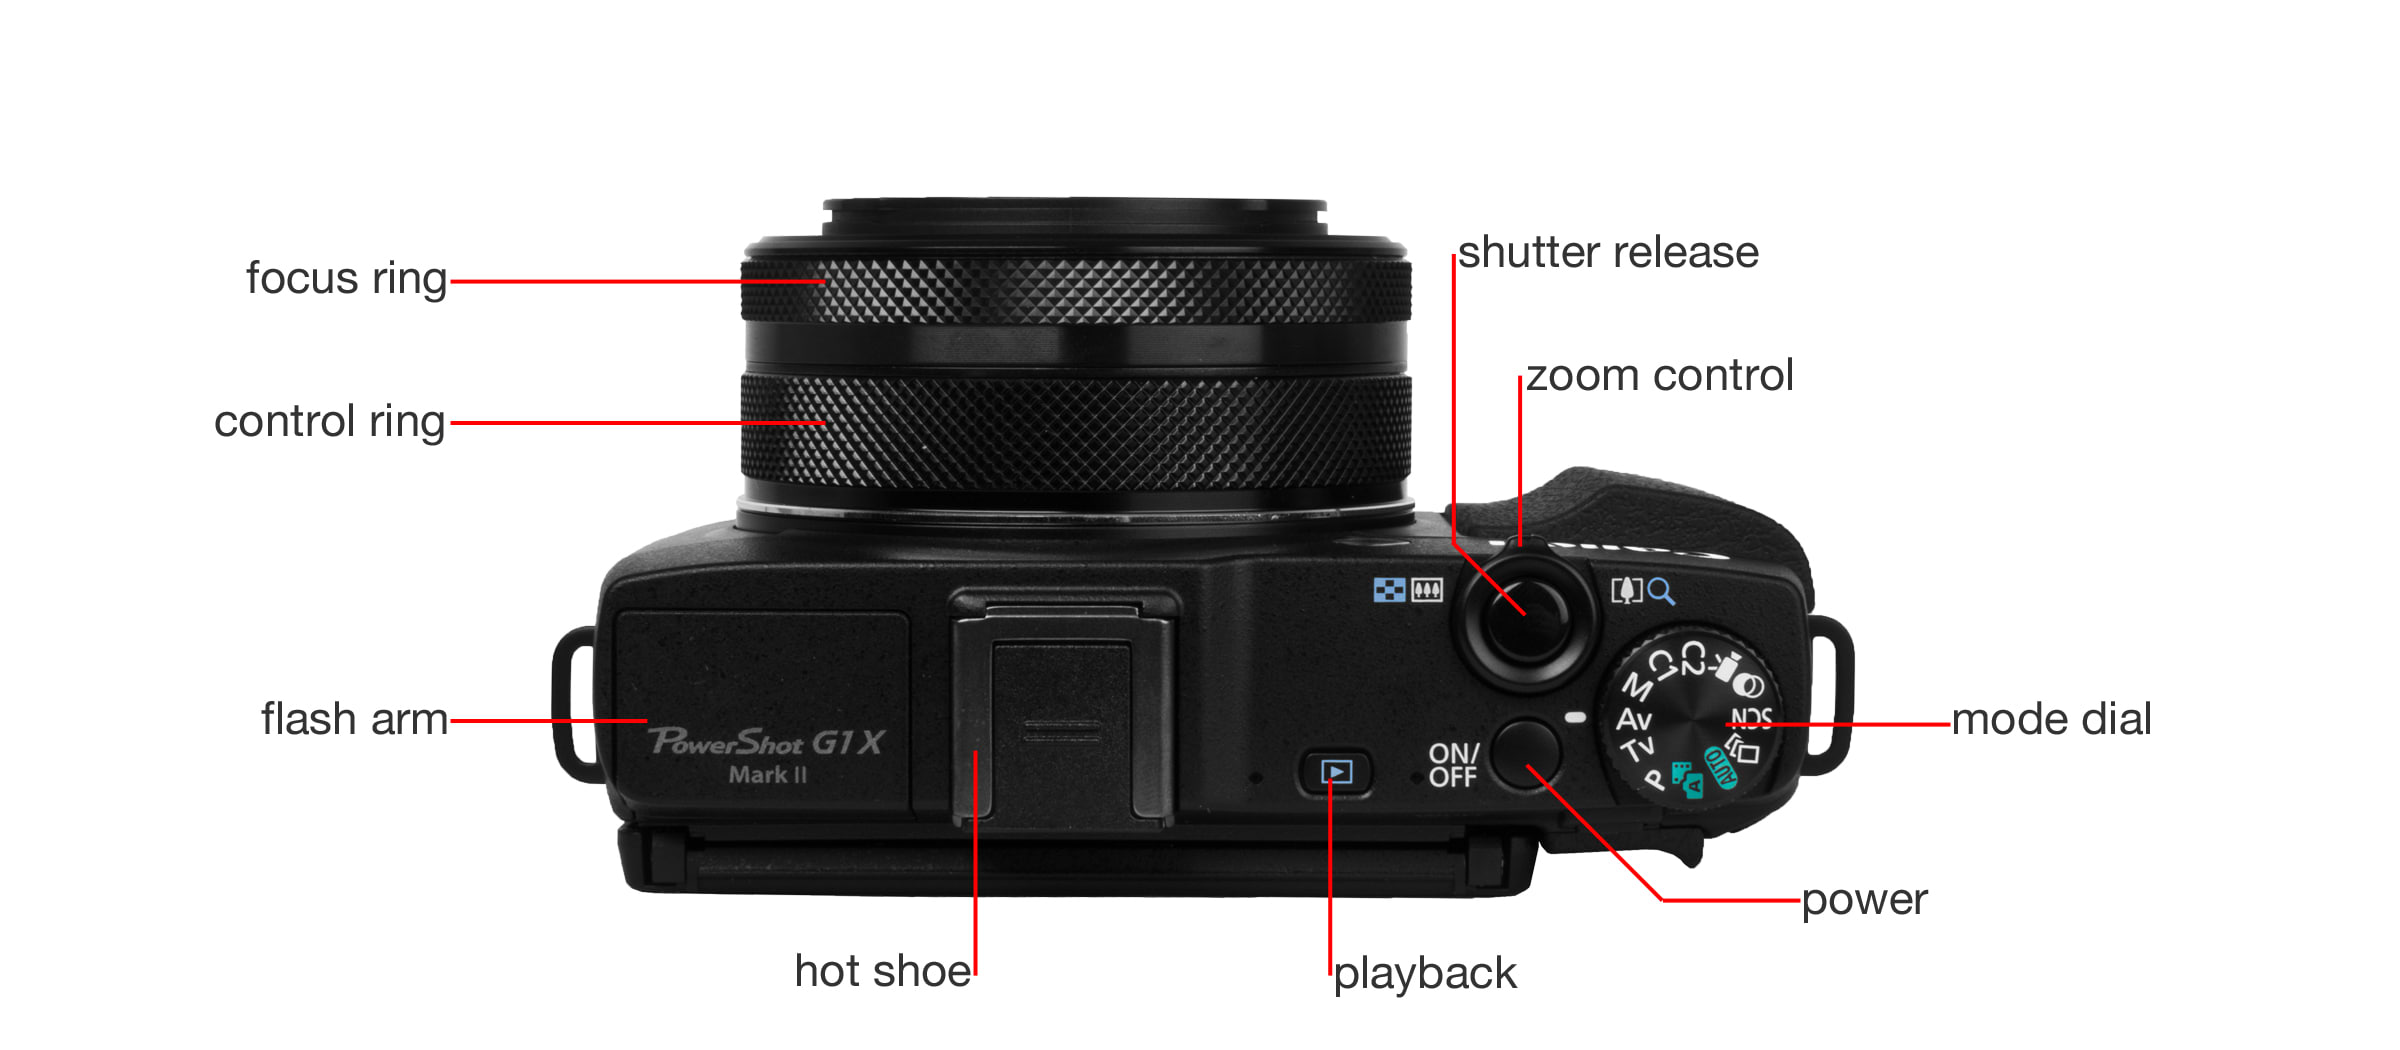 A detailed callout image of the Canon PowerShot G1 X Mark II.